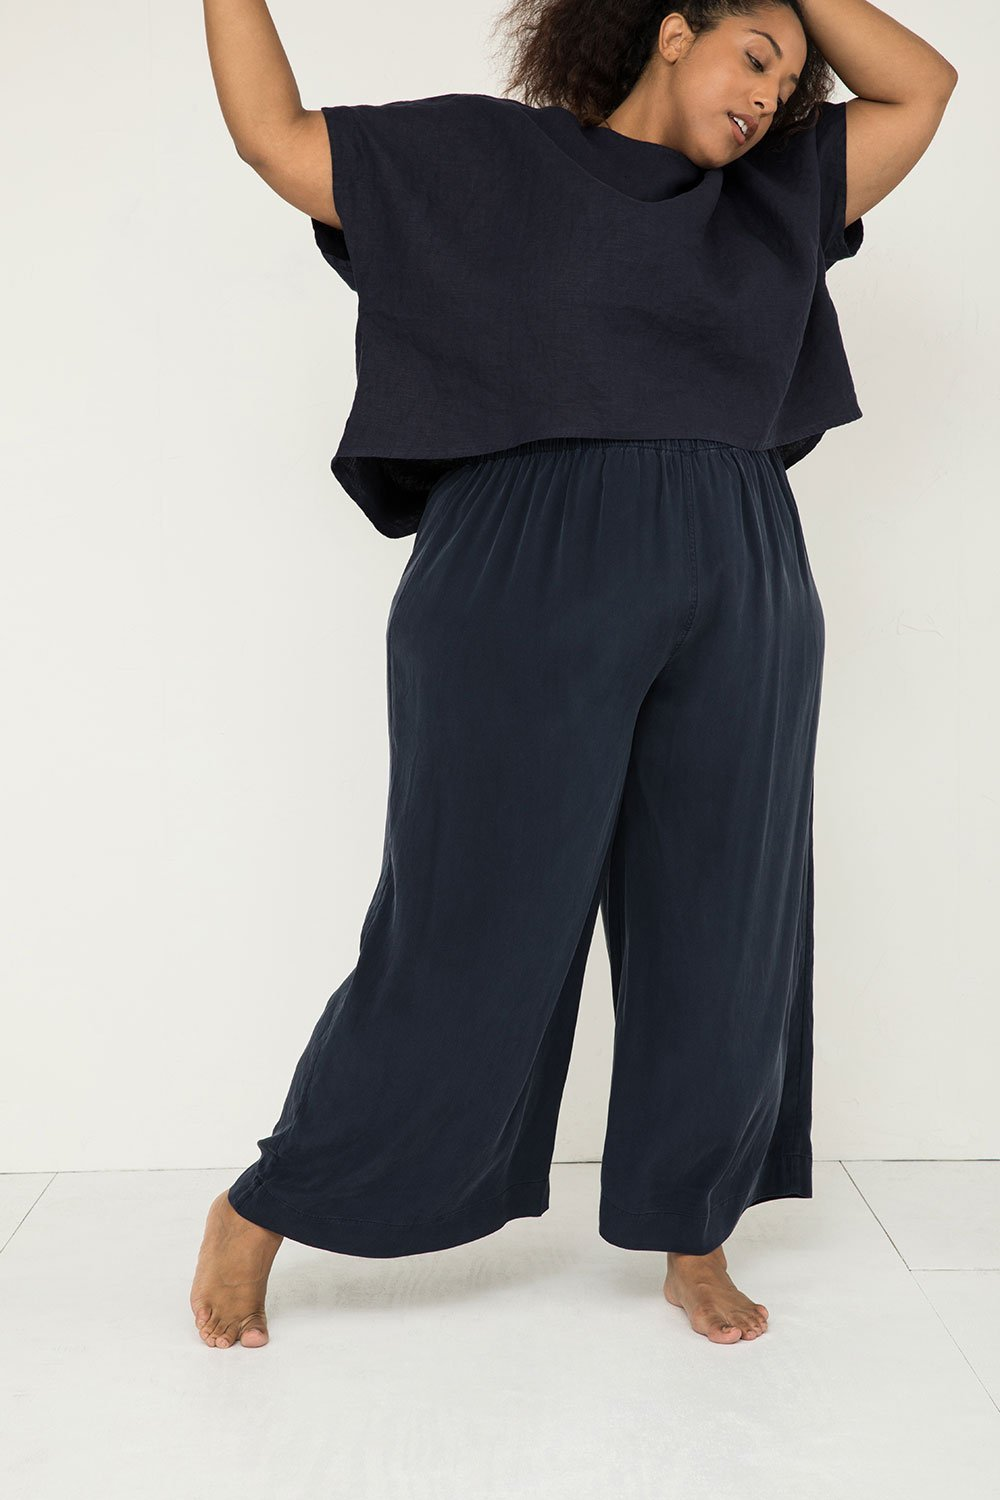 Florence Pant in Navy by Elizabeth Suzann